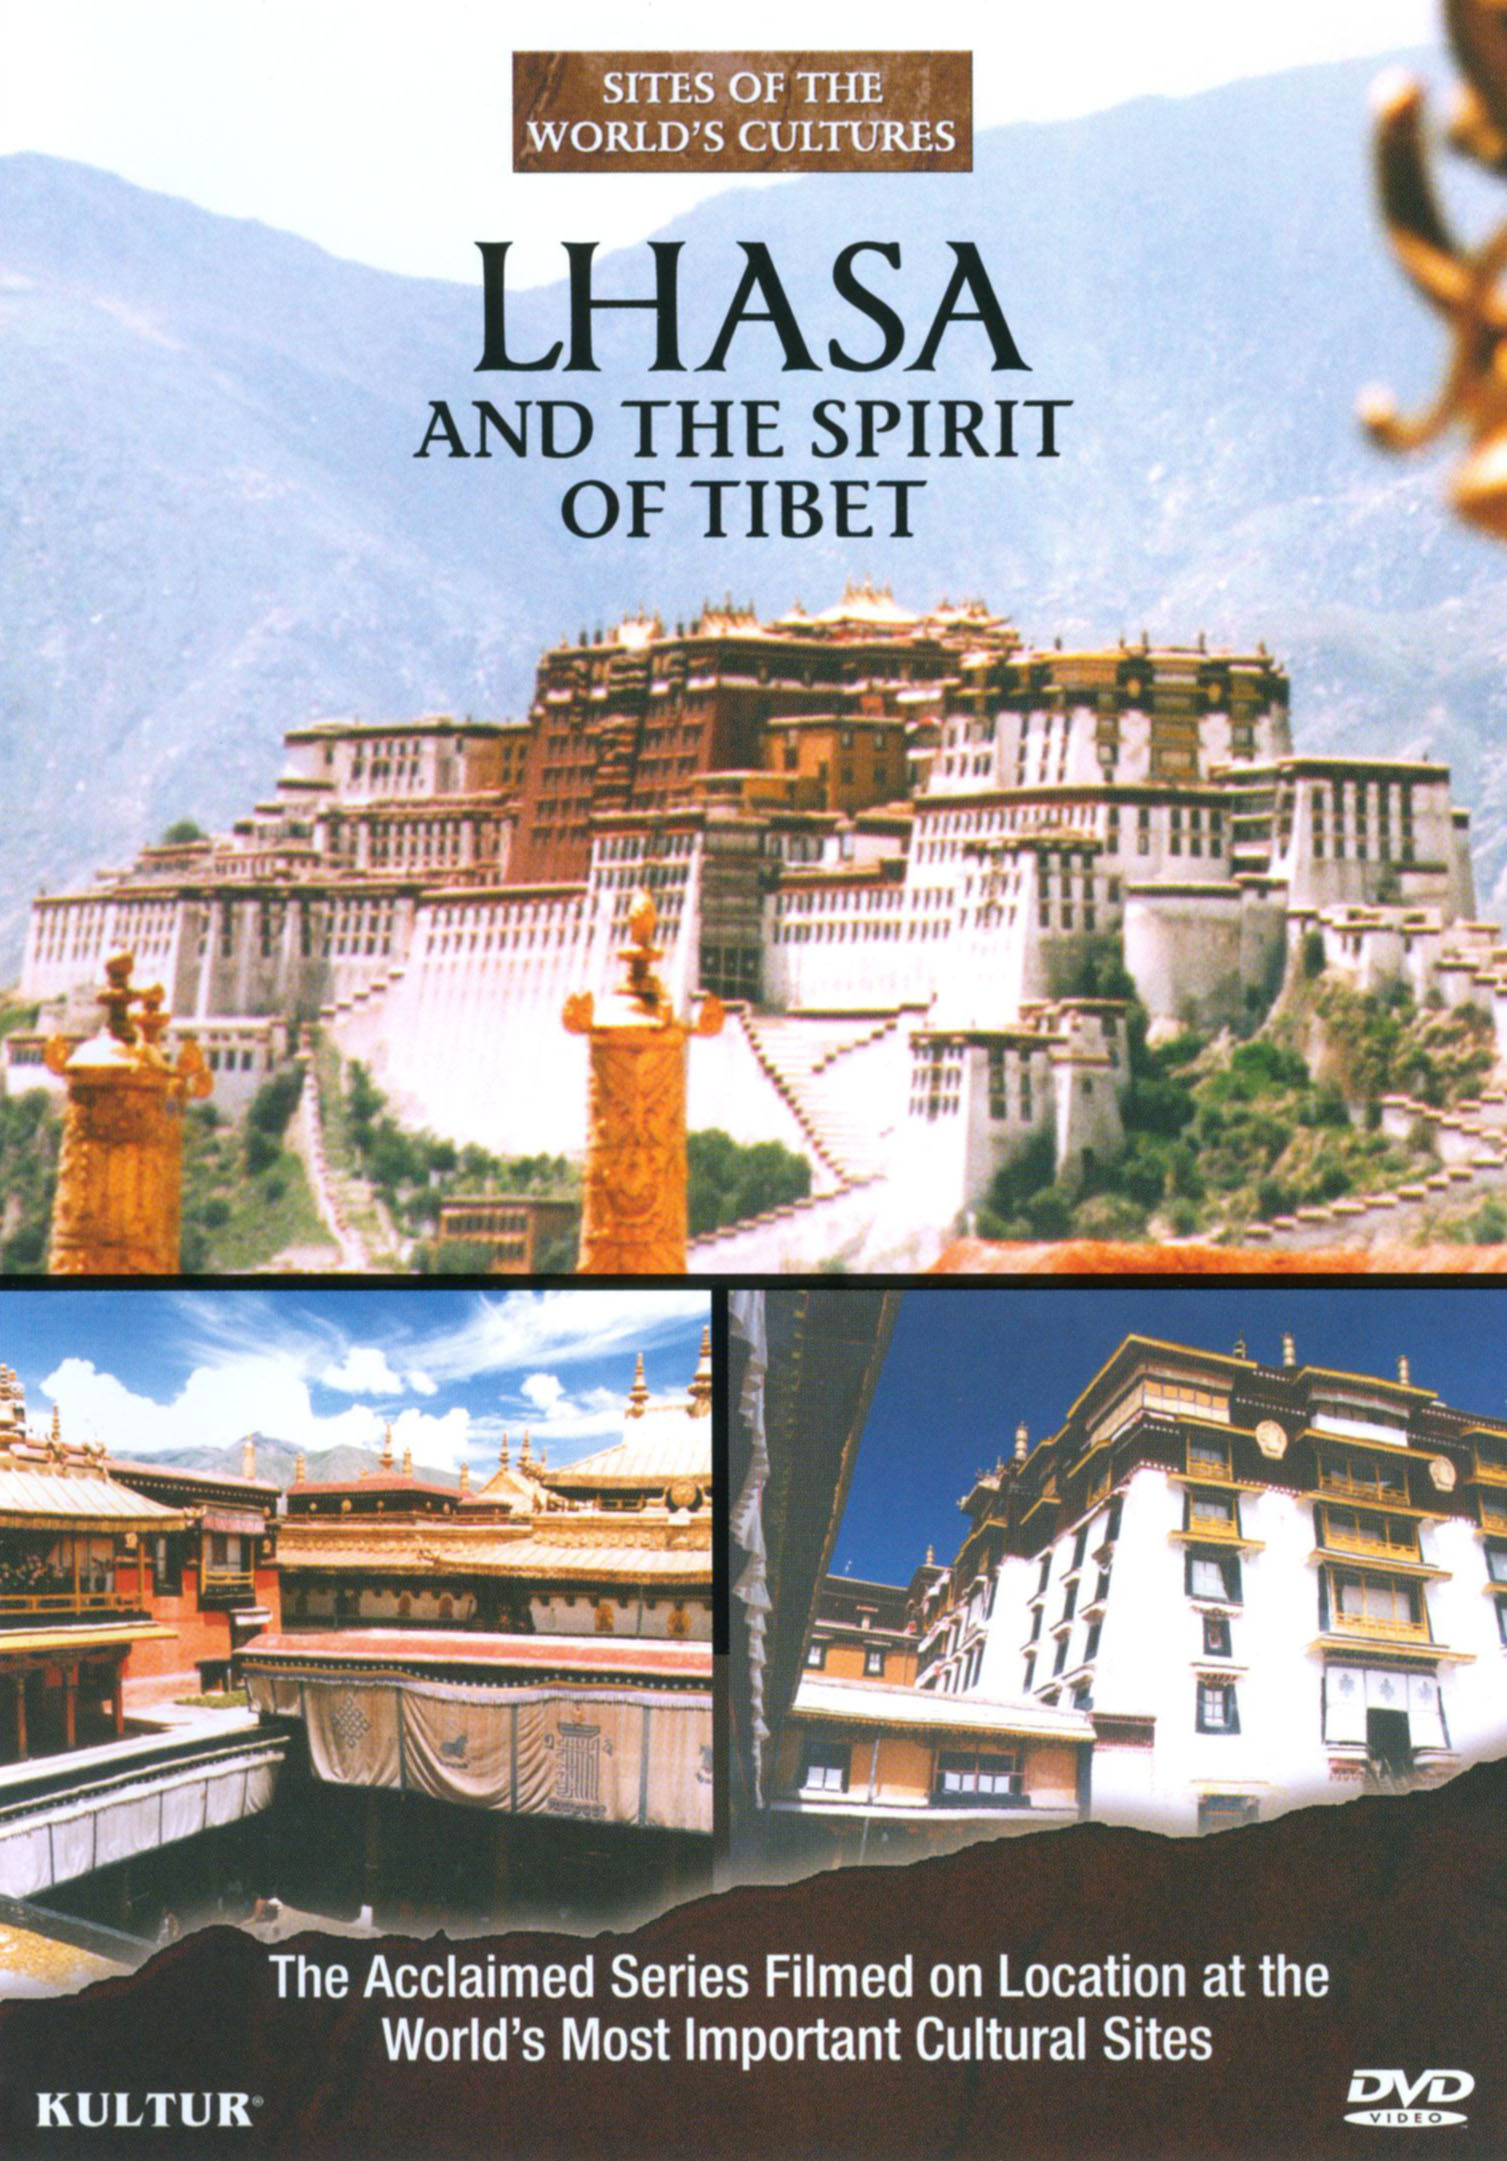 Sites of the World's Cultures: Lhasa and the Spirit of Tibet